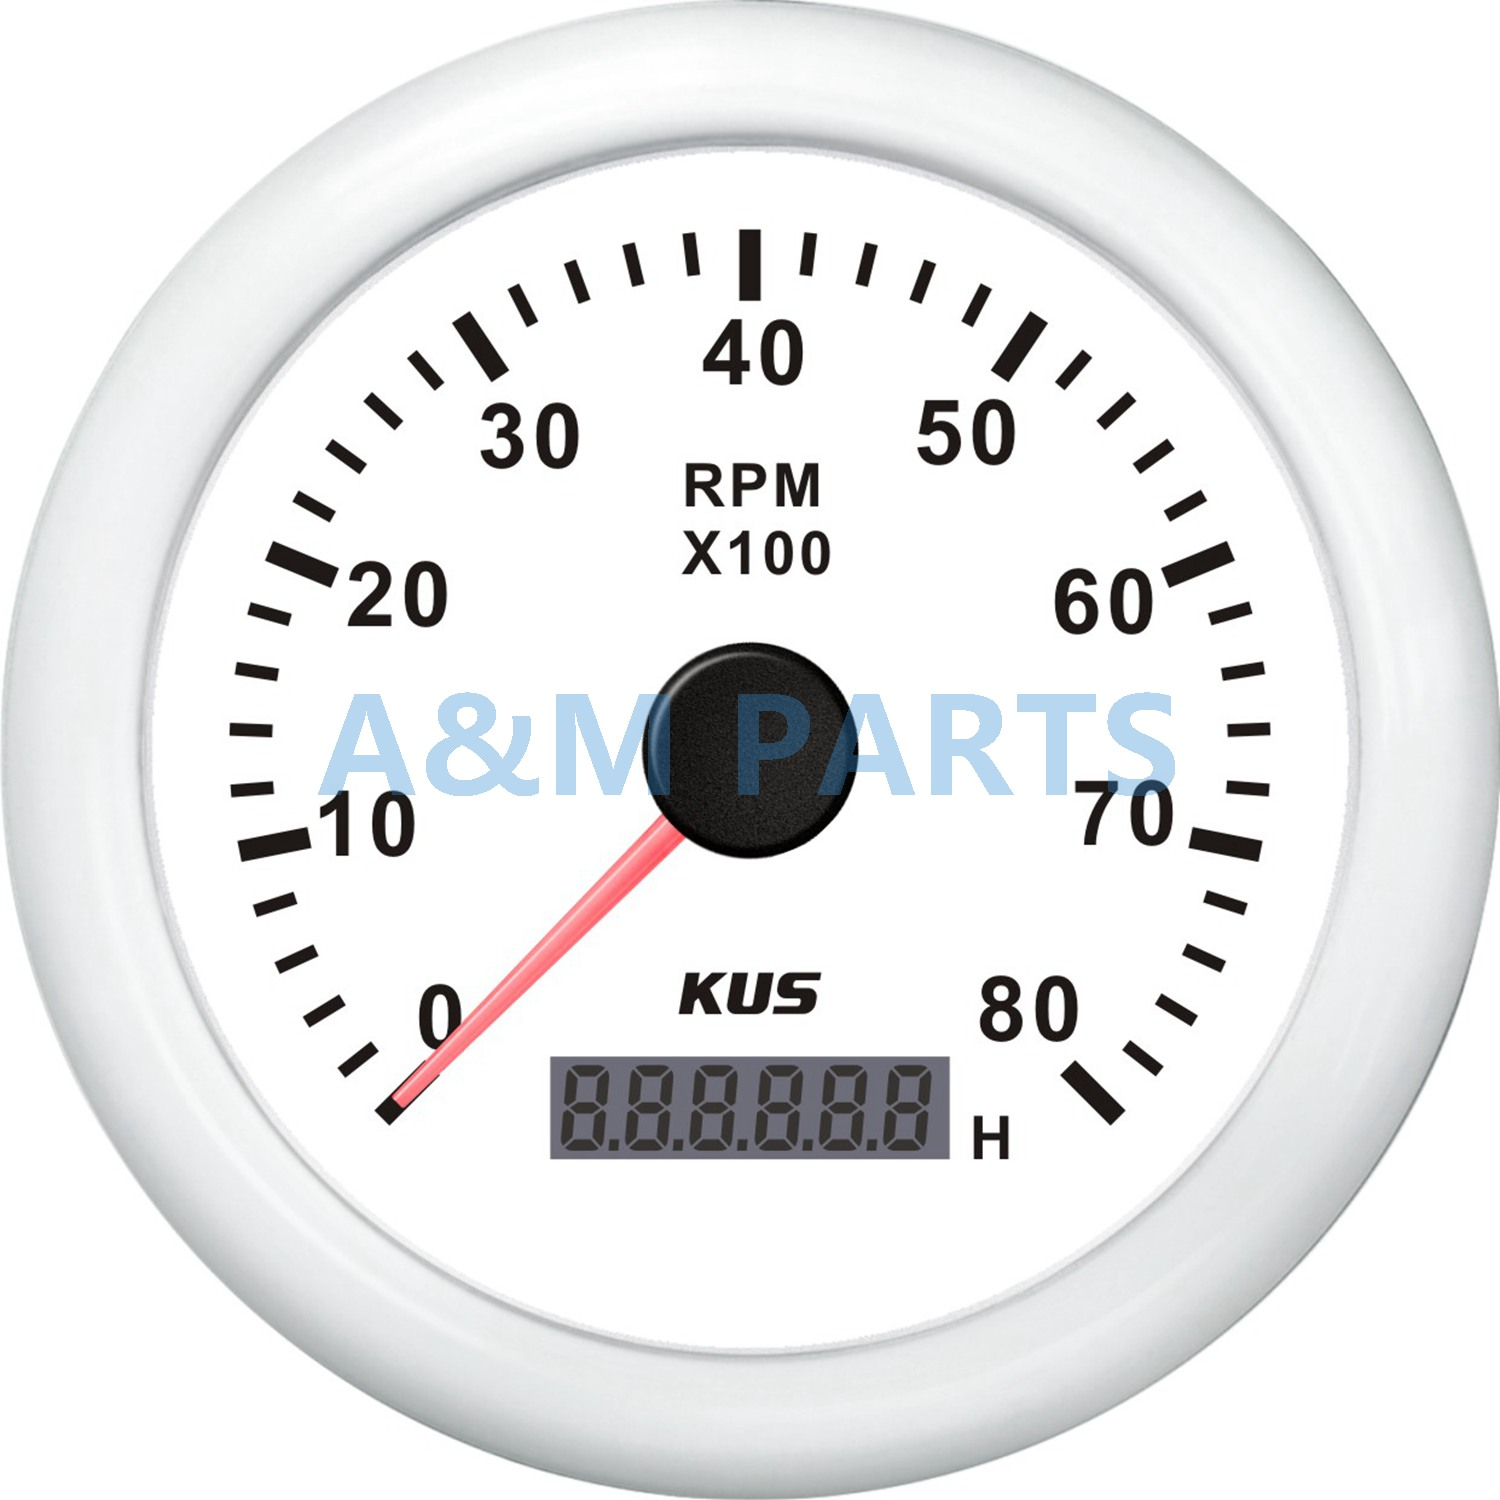 KUS Boat Engine RPM Meter LCD Hourmeter Tacho Gauge White 12V/24V 8000RPM датчик kus 12v 24v